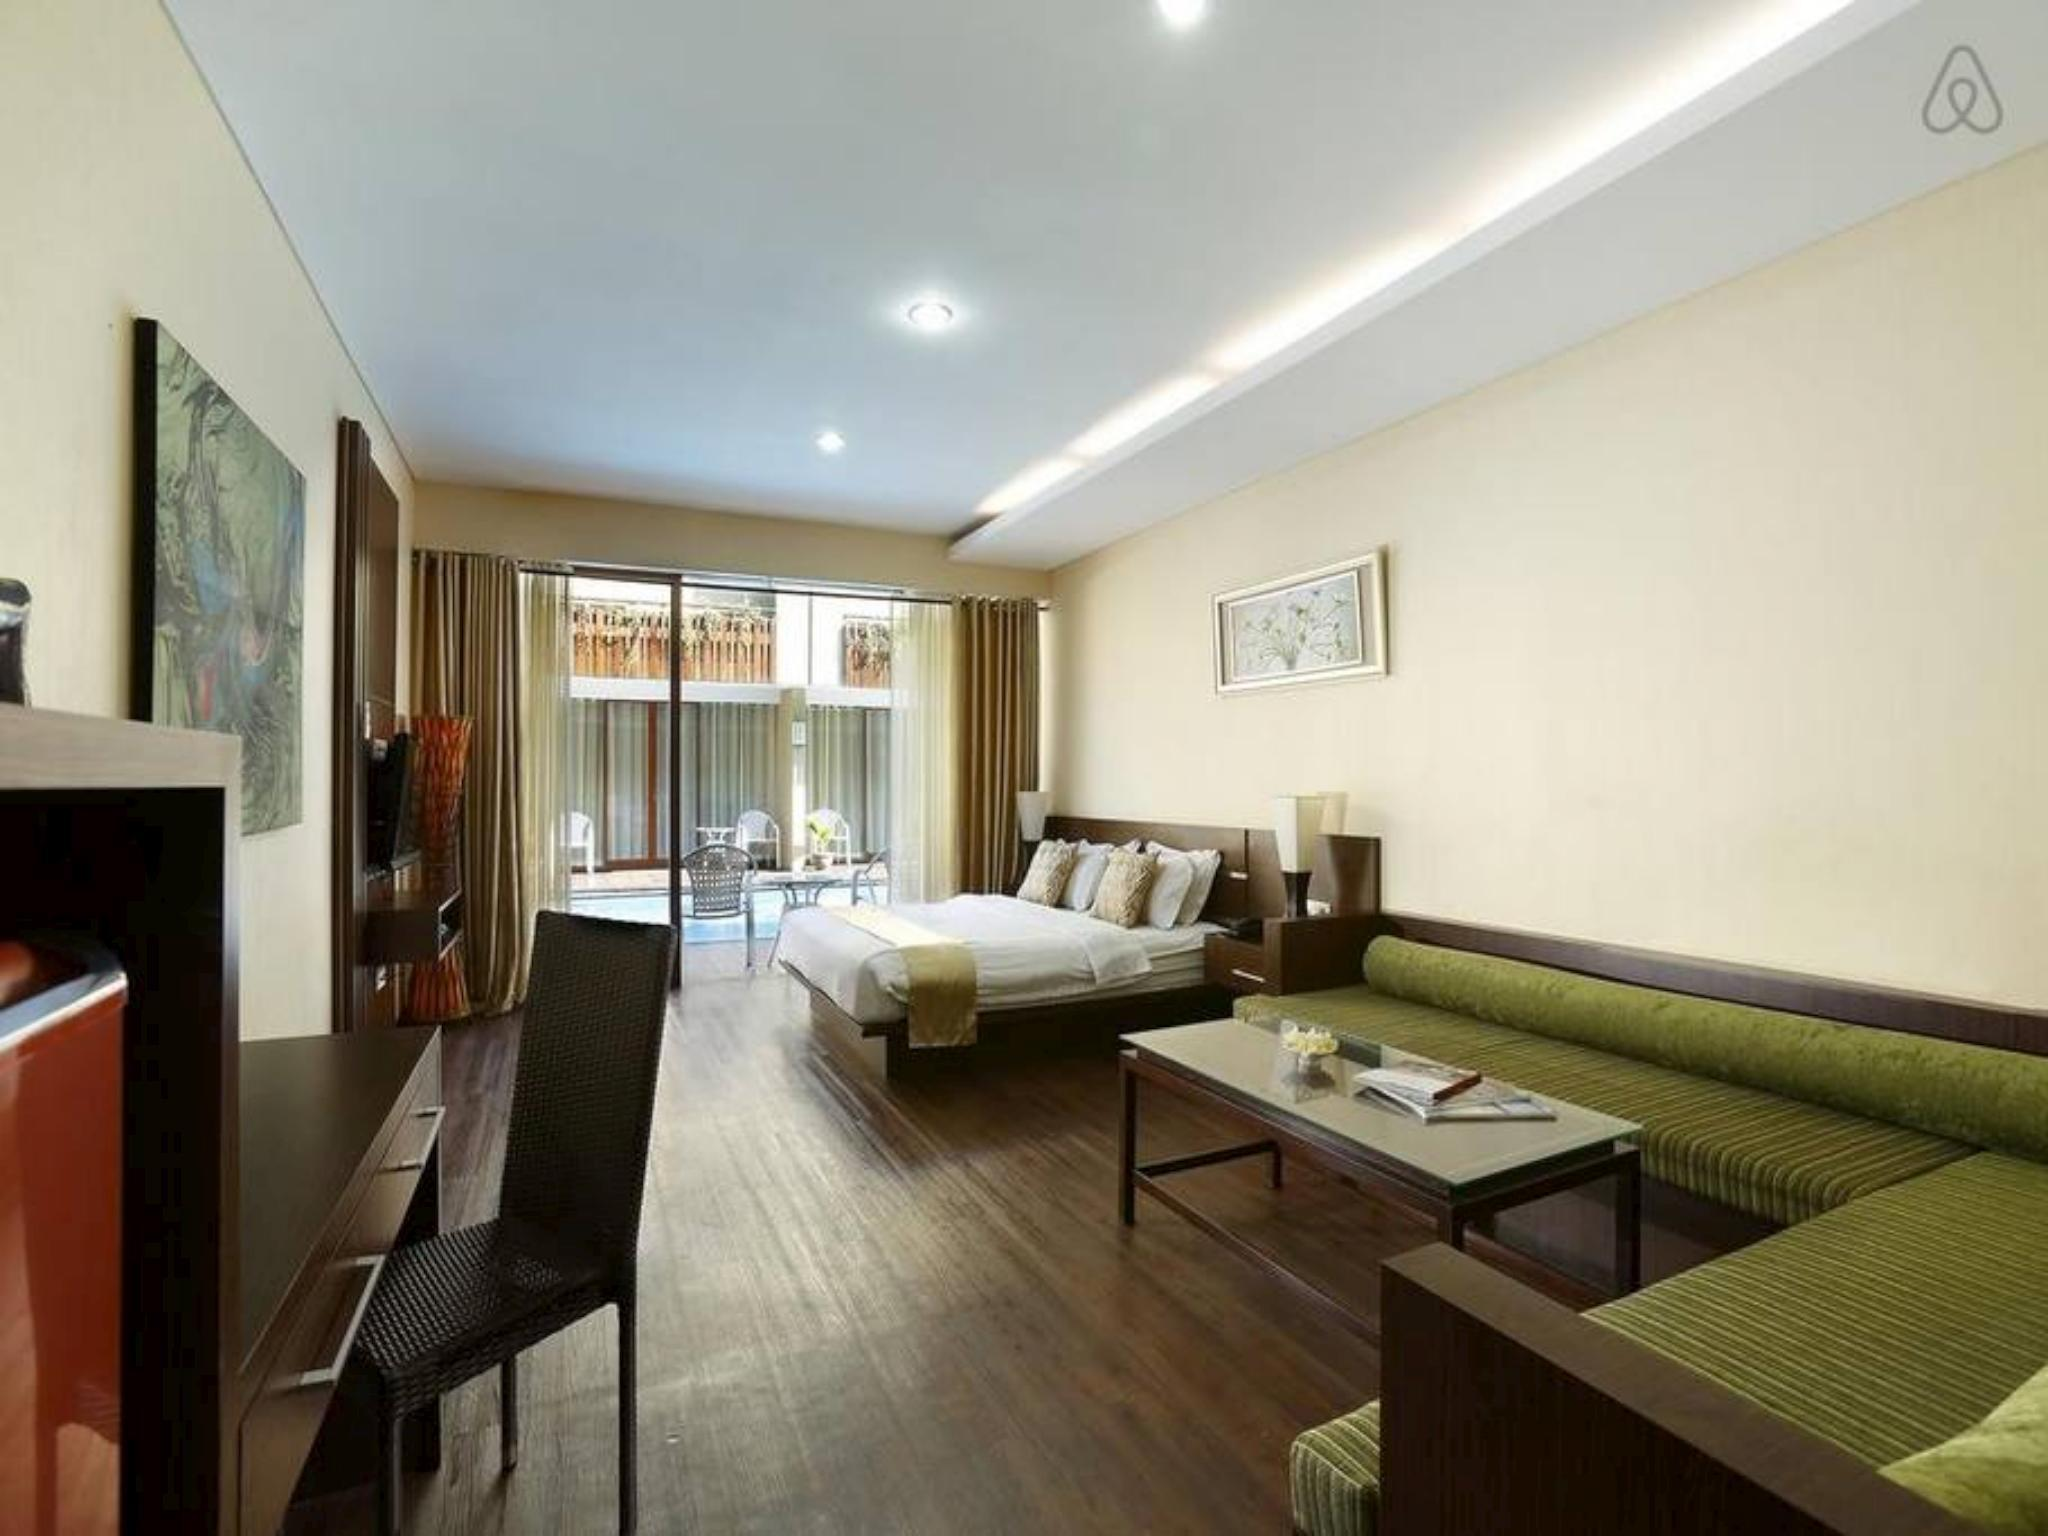 Suite Room and Residence in Legian